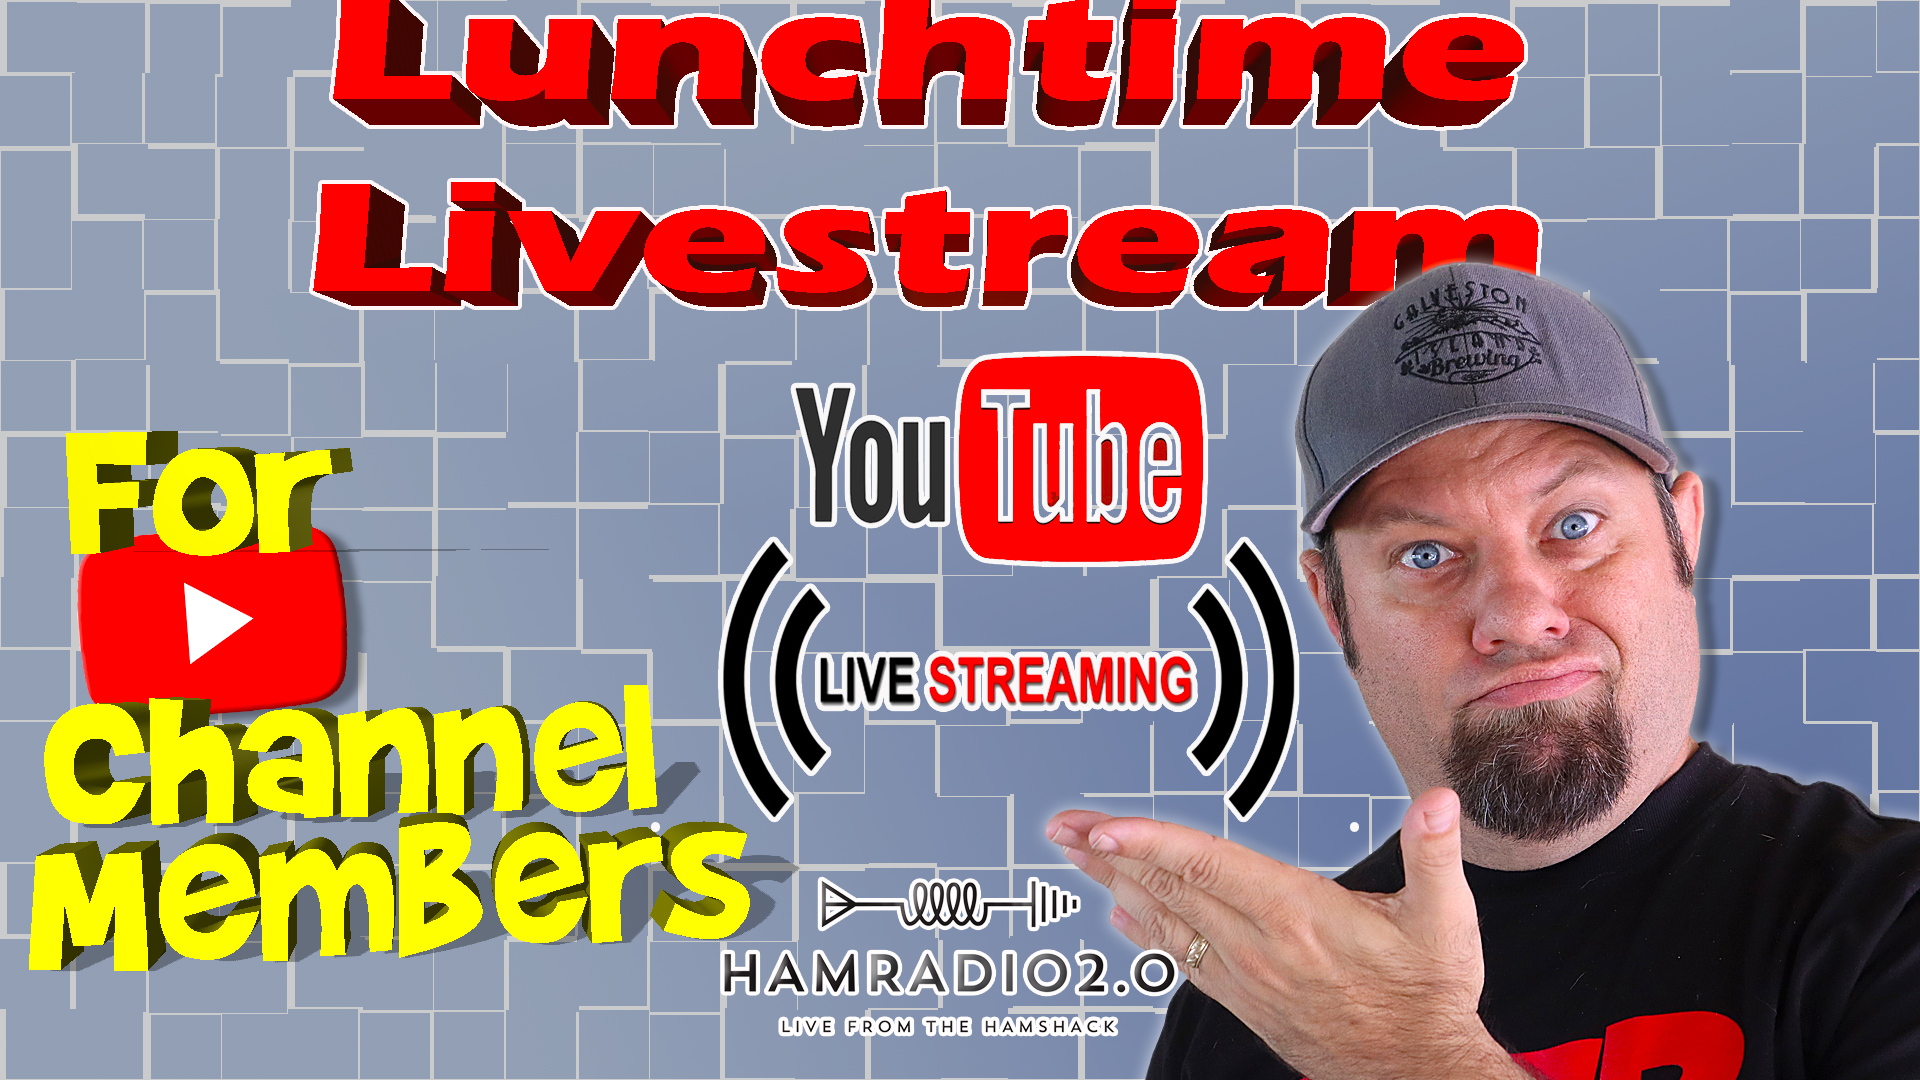 Episode 507: Lunchtime Livestream for YouTube Channel Members